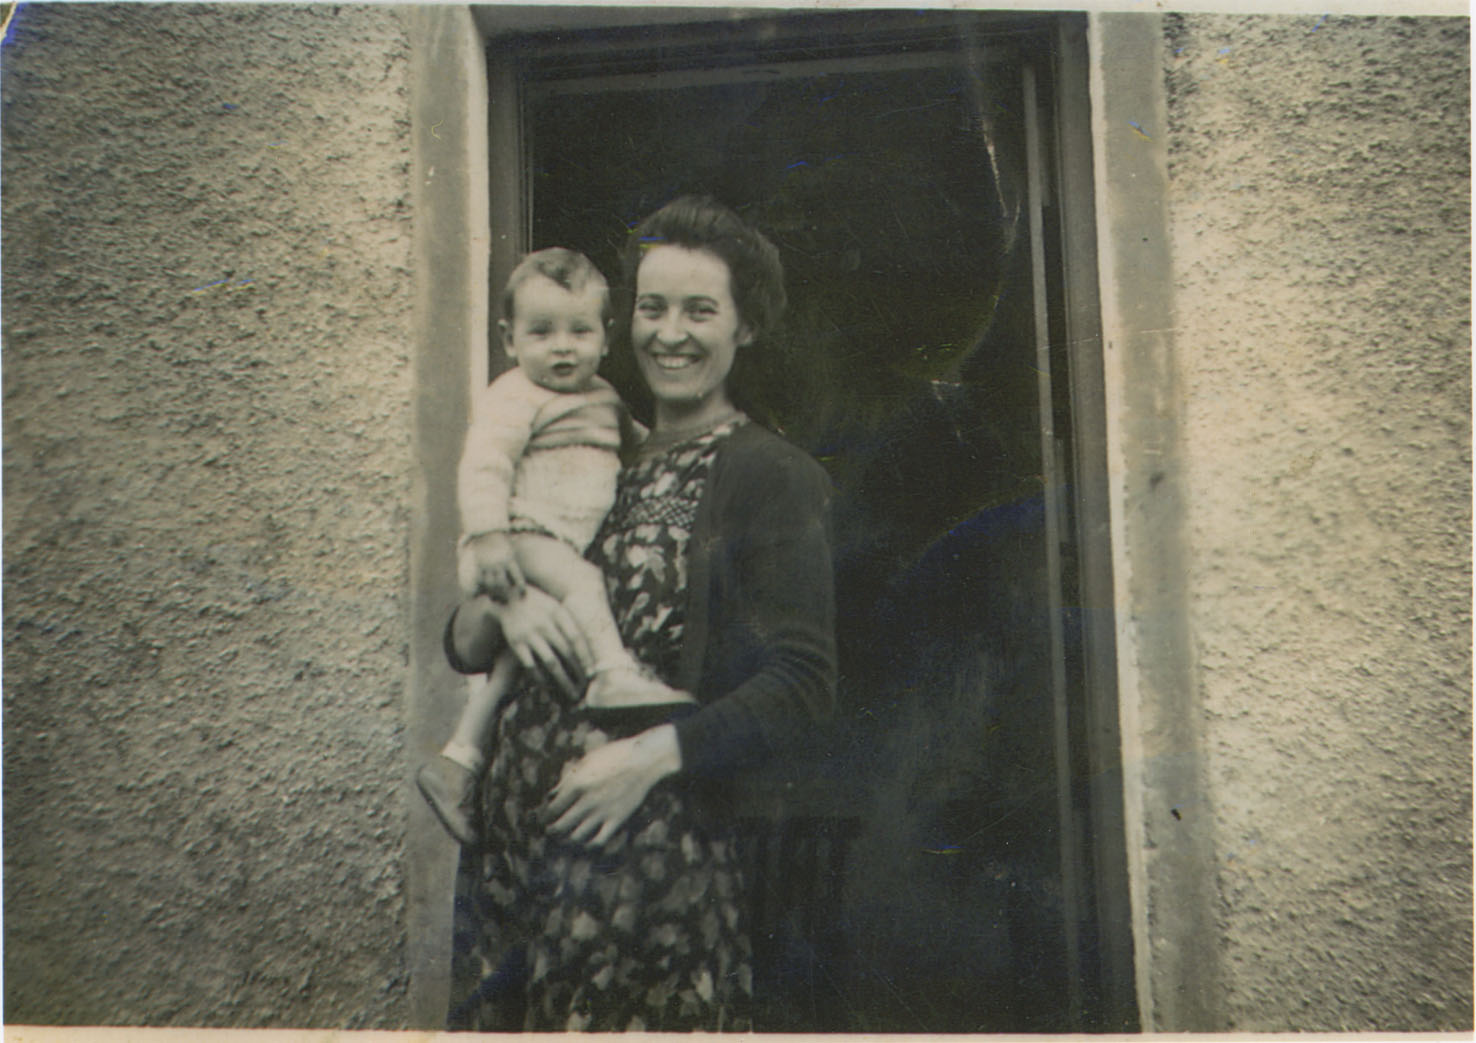 Michael Dowling, held by his mother Meg in front of their thatched cottage home in Knockaderry, County Limerick, 1950.